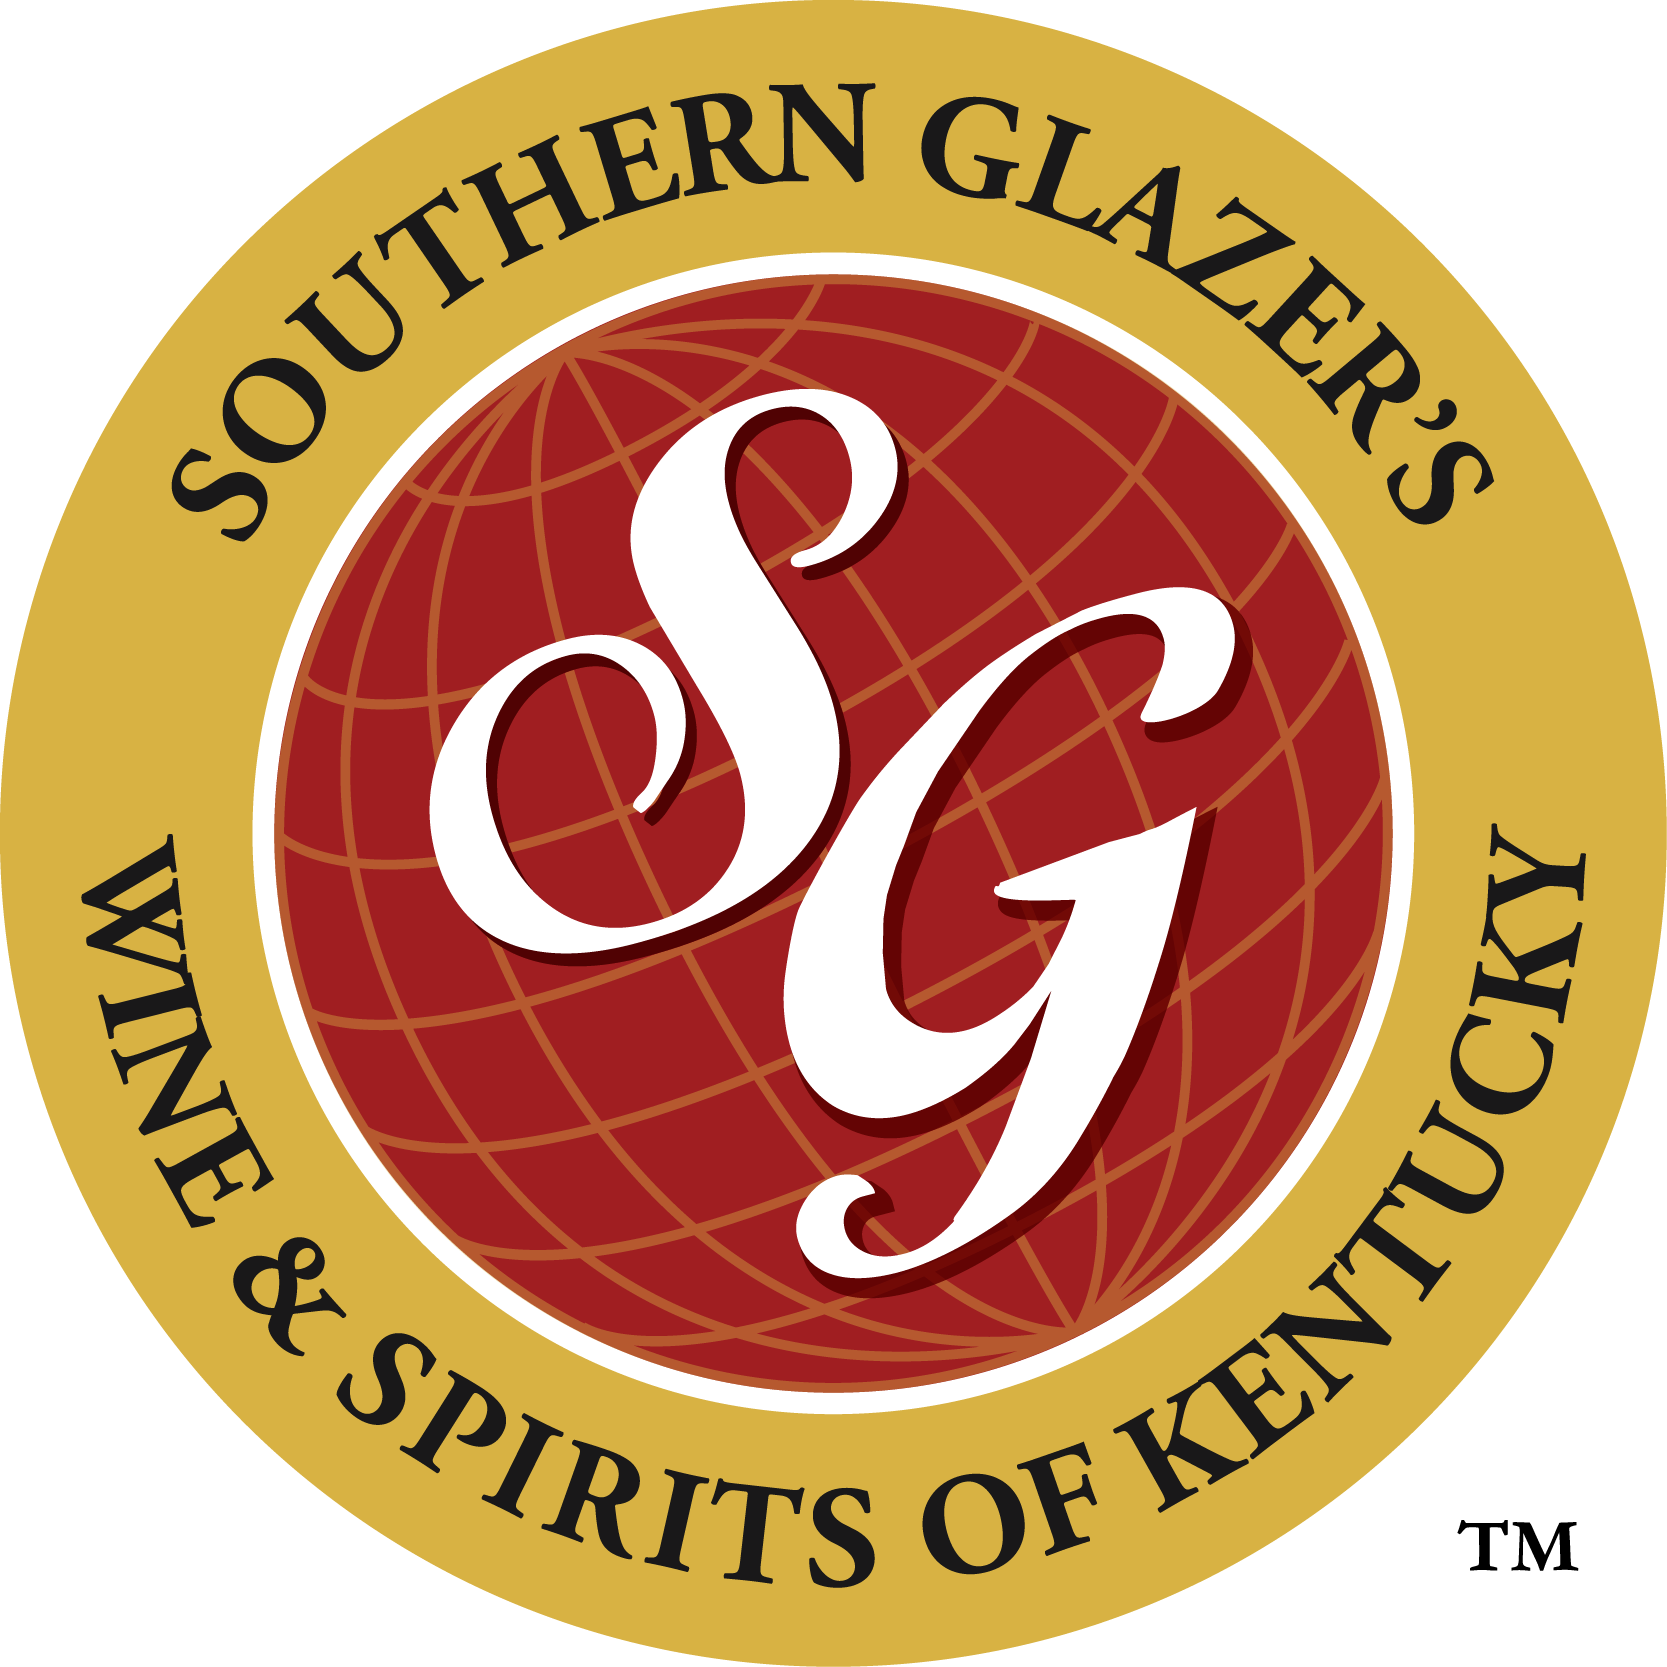 Southern Glazers_Seal_Kentucky